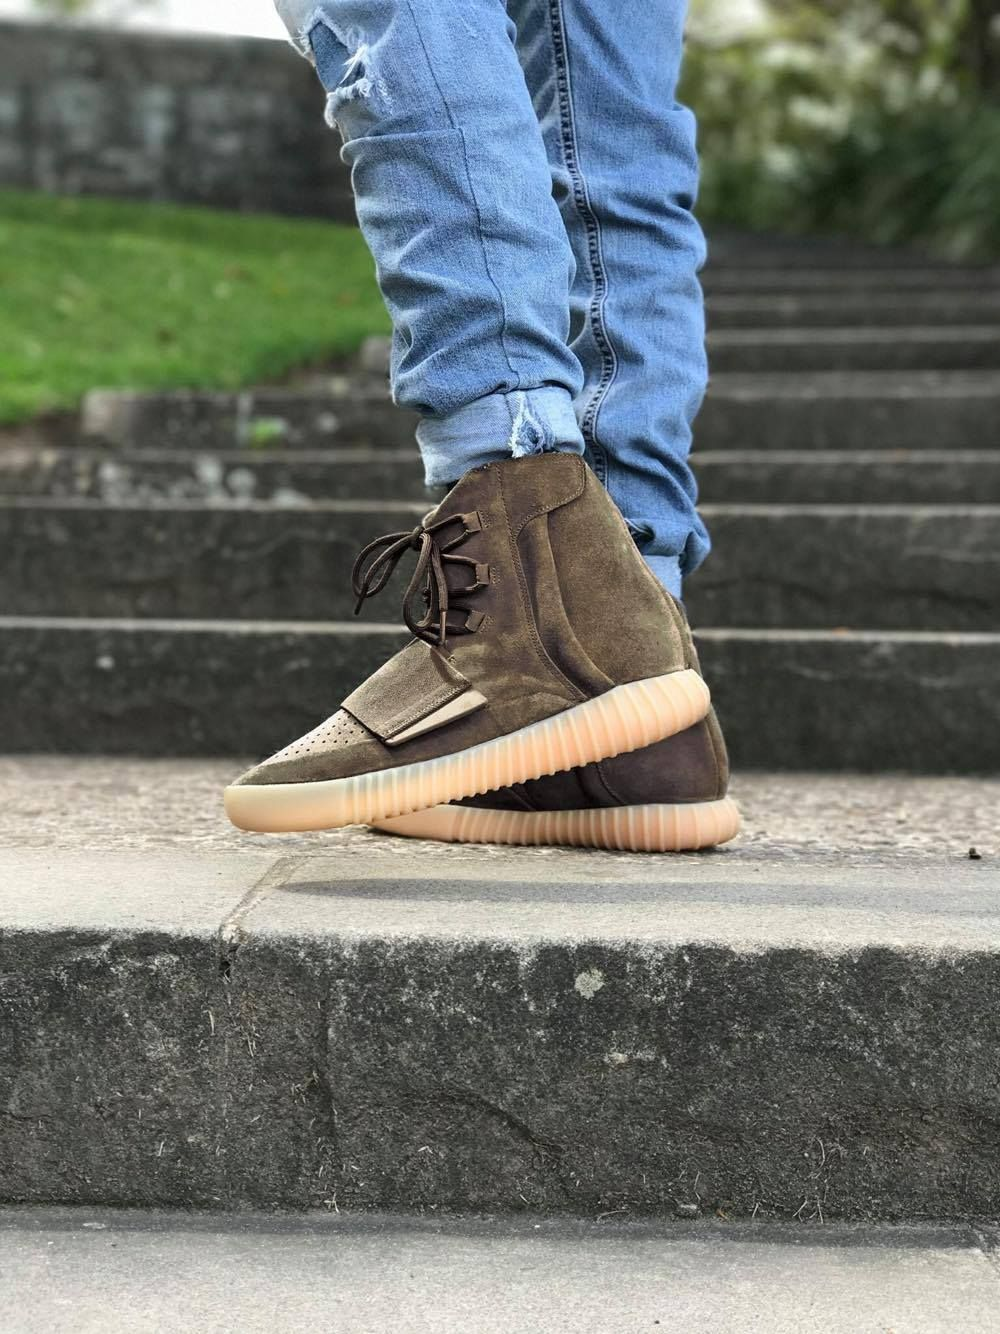 88794126c1468 Watch out for all the fake Adidas Yeezy 750 Boost s